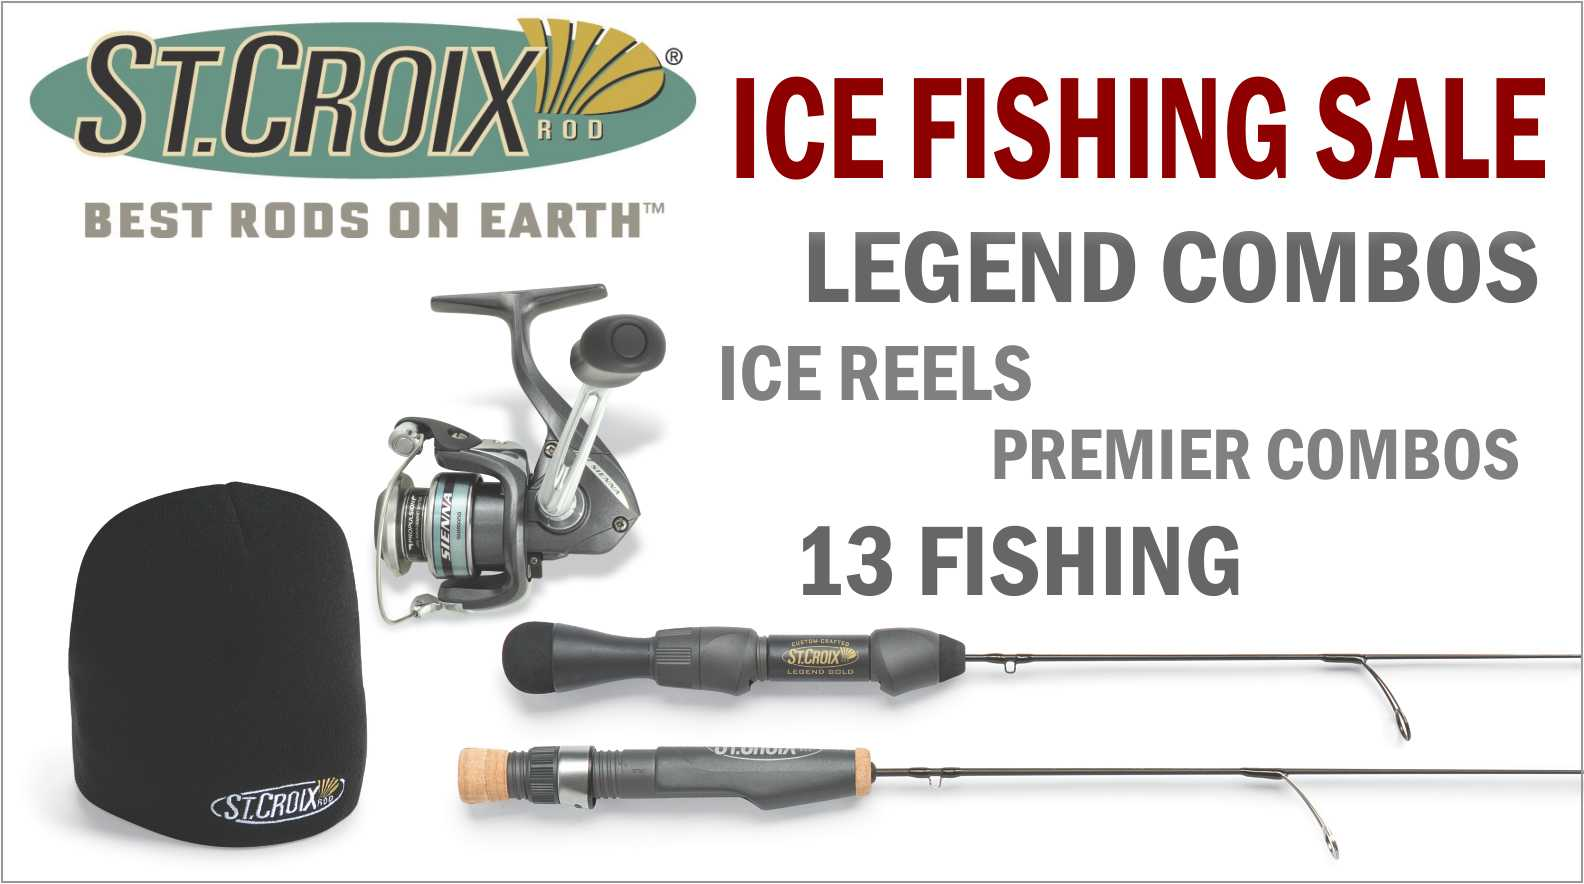 Ice Fishing sale: Includes St. Croix Ice Rods, Shimano and Mitchell reels.